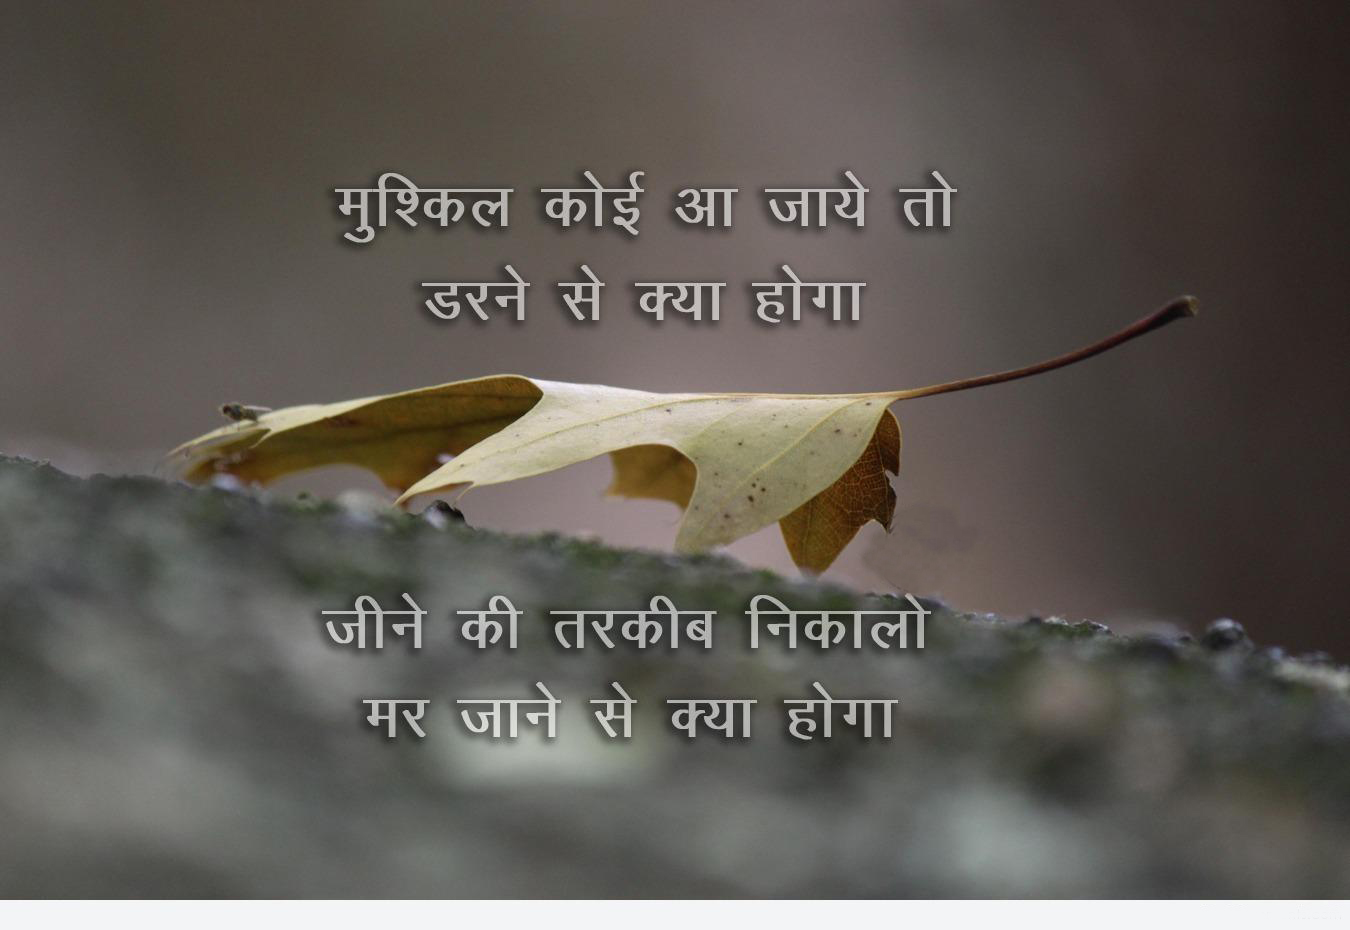 Free Download Full Hd Shayari Wallpaper Download Get Latest